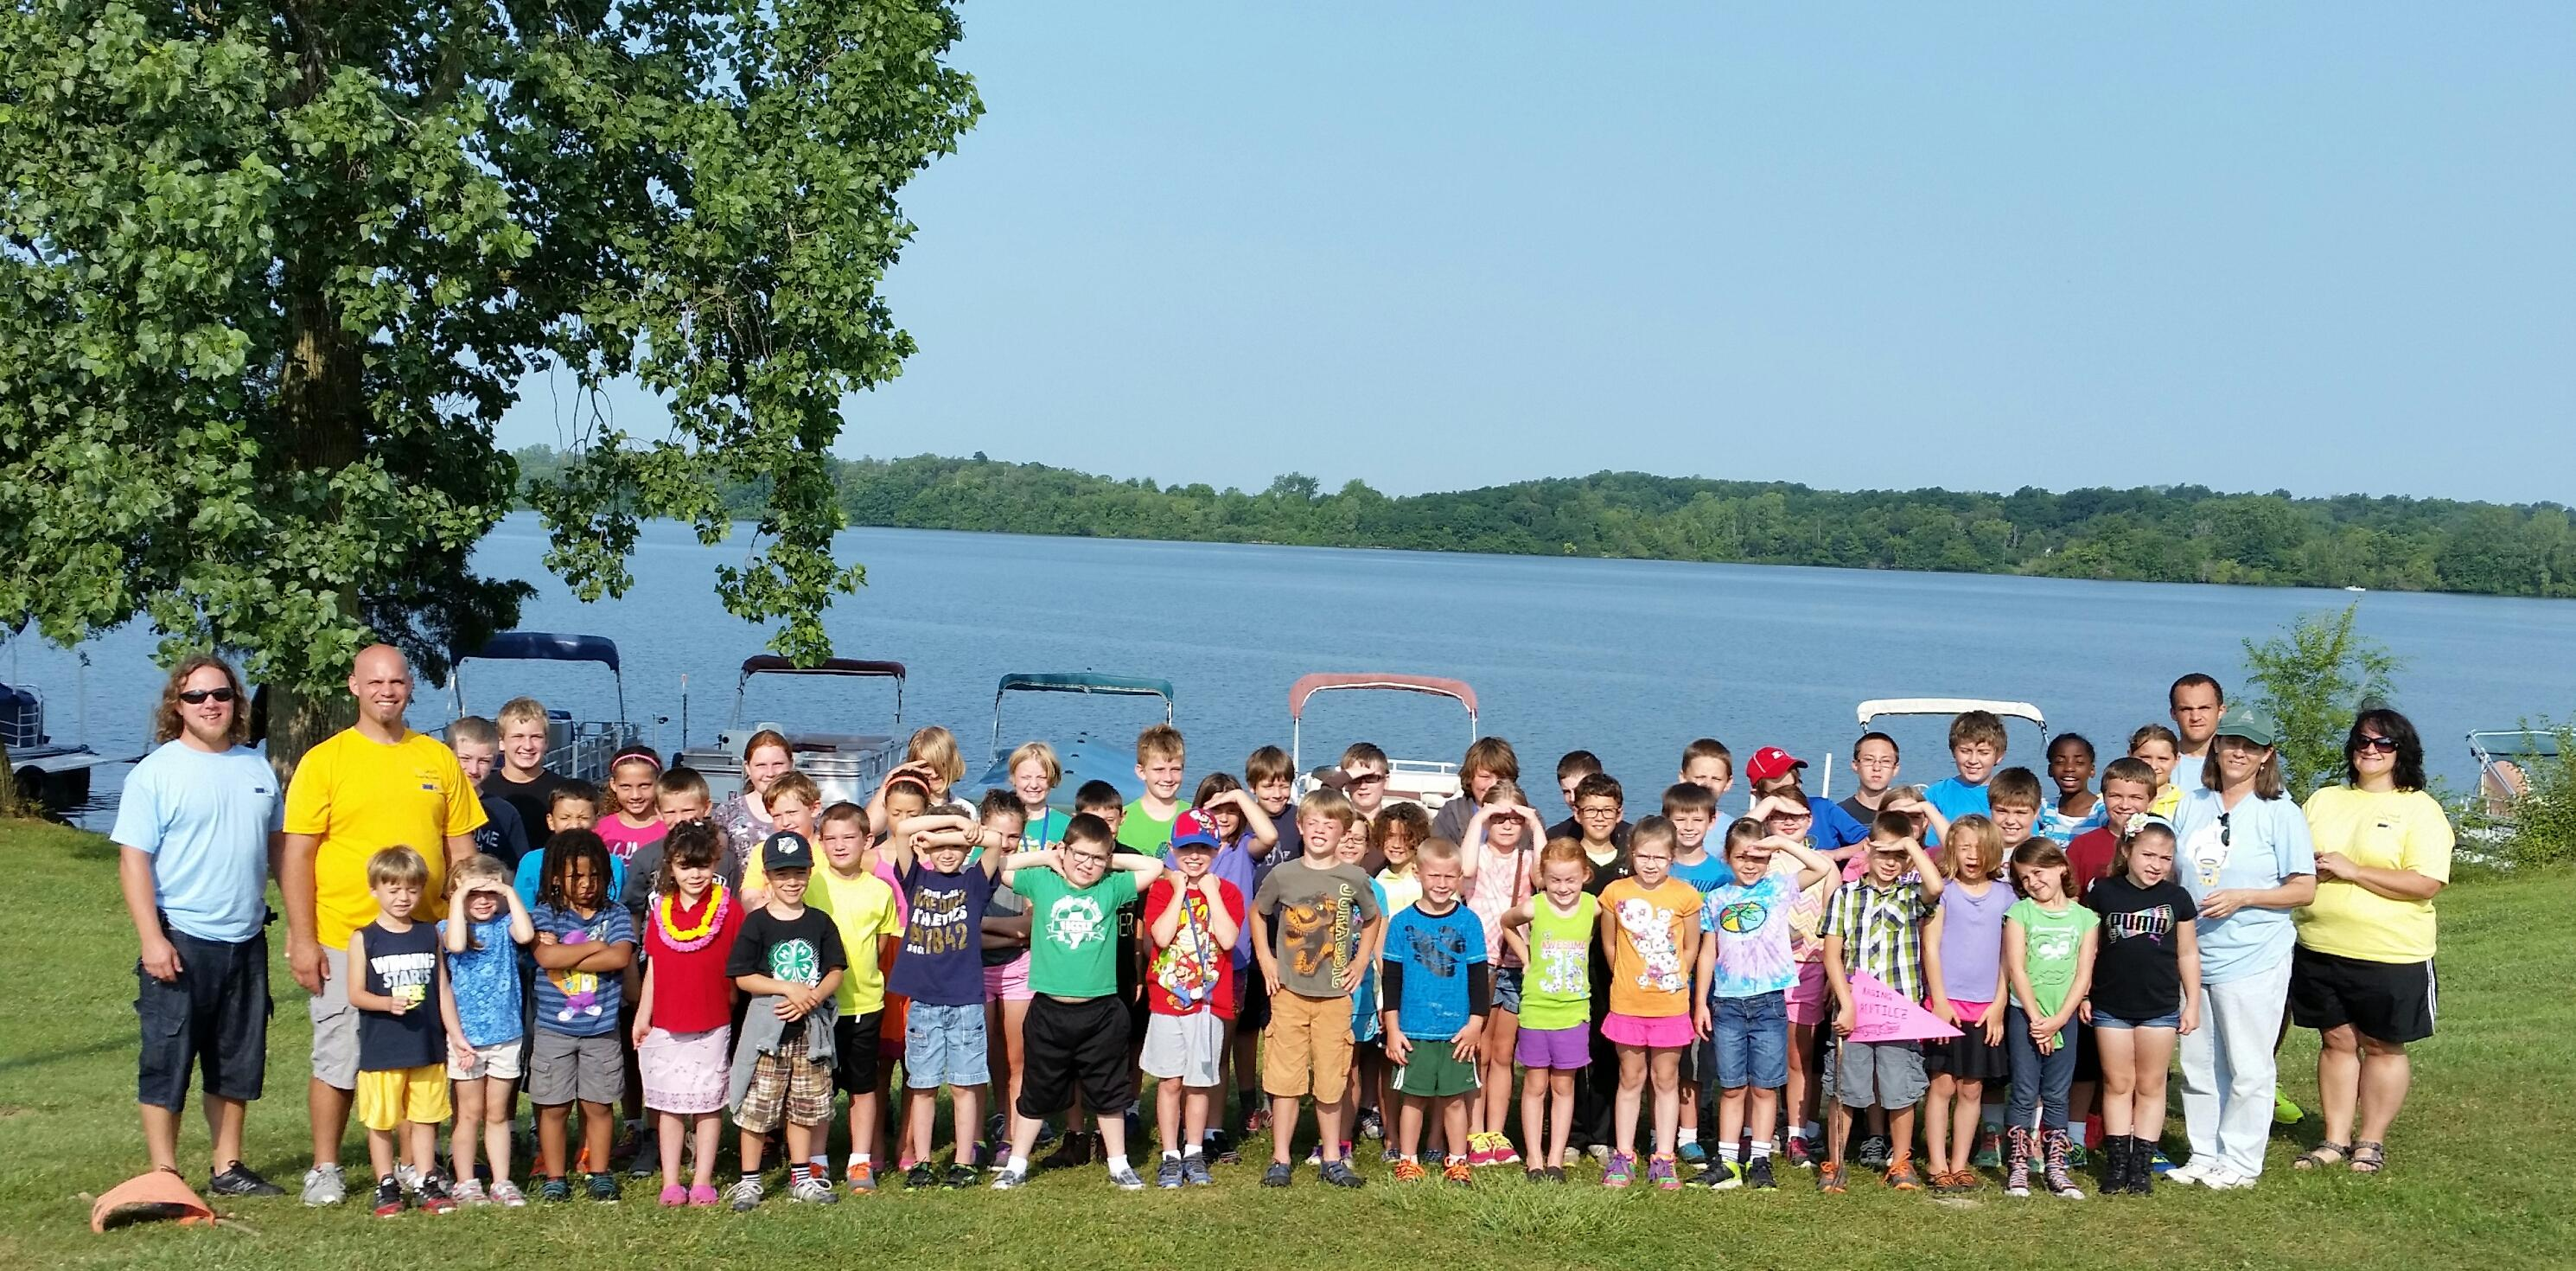 Camp Prairie Creek 2014 Group Photo